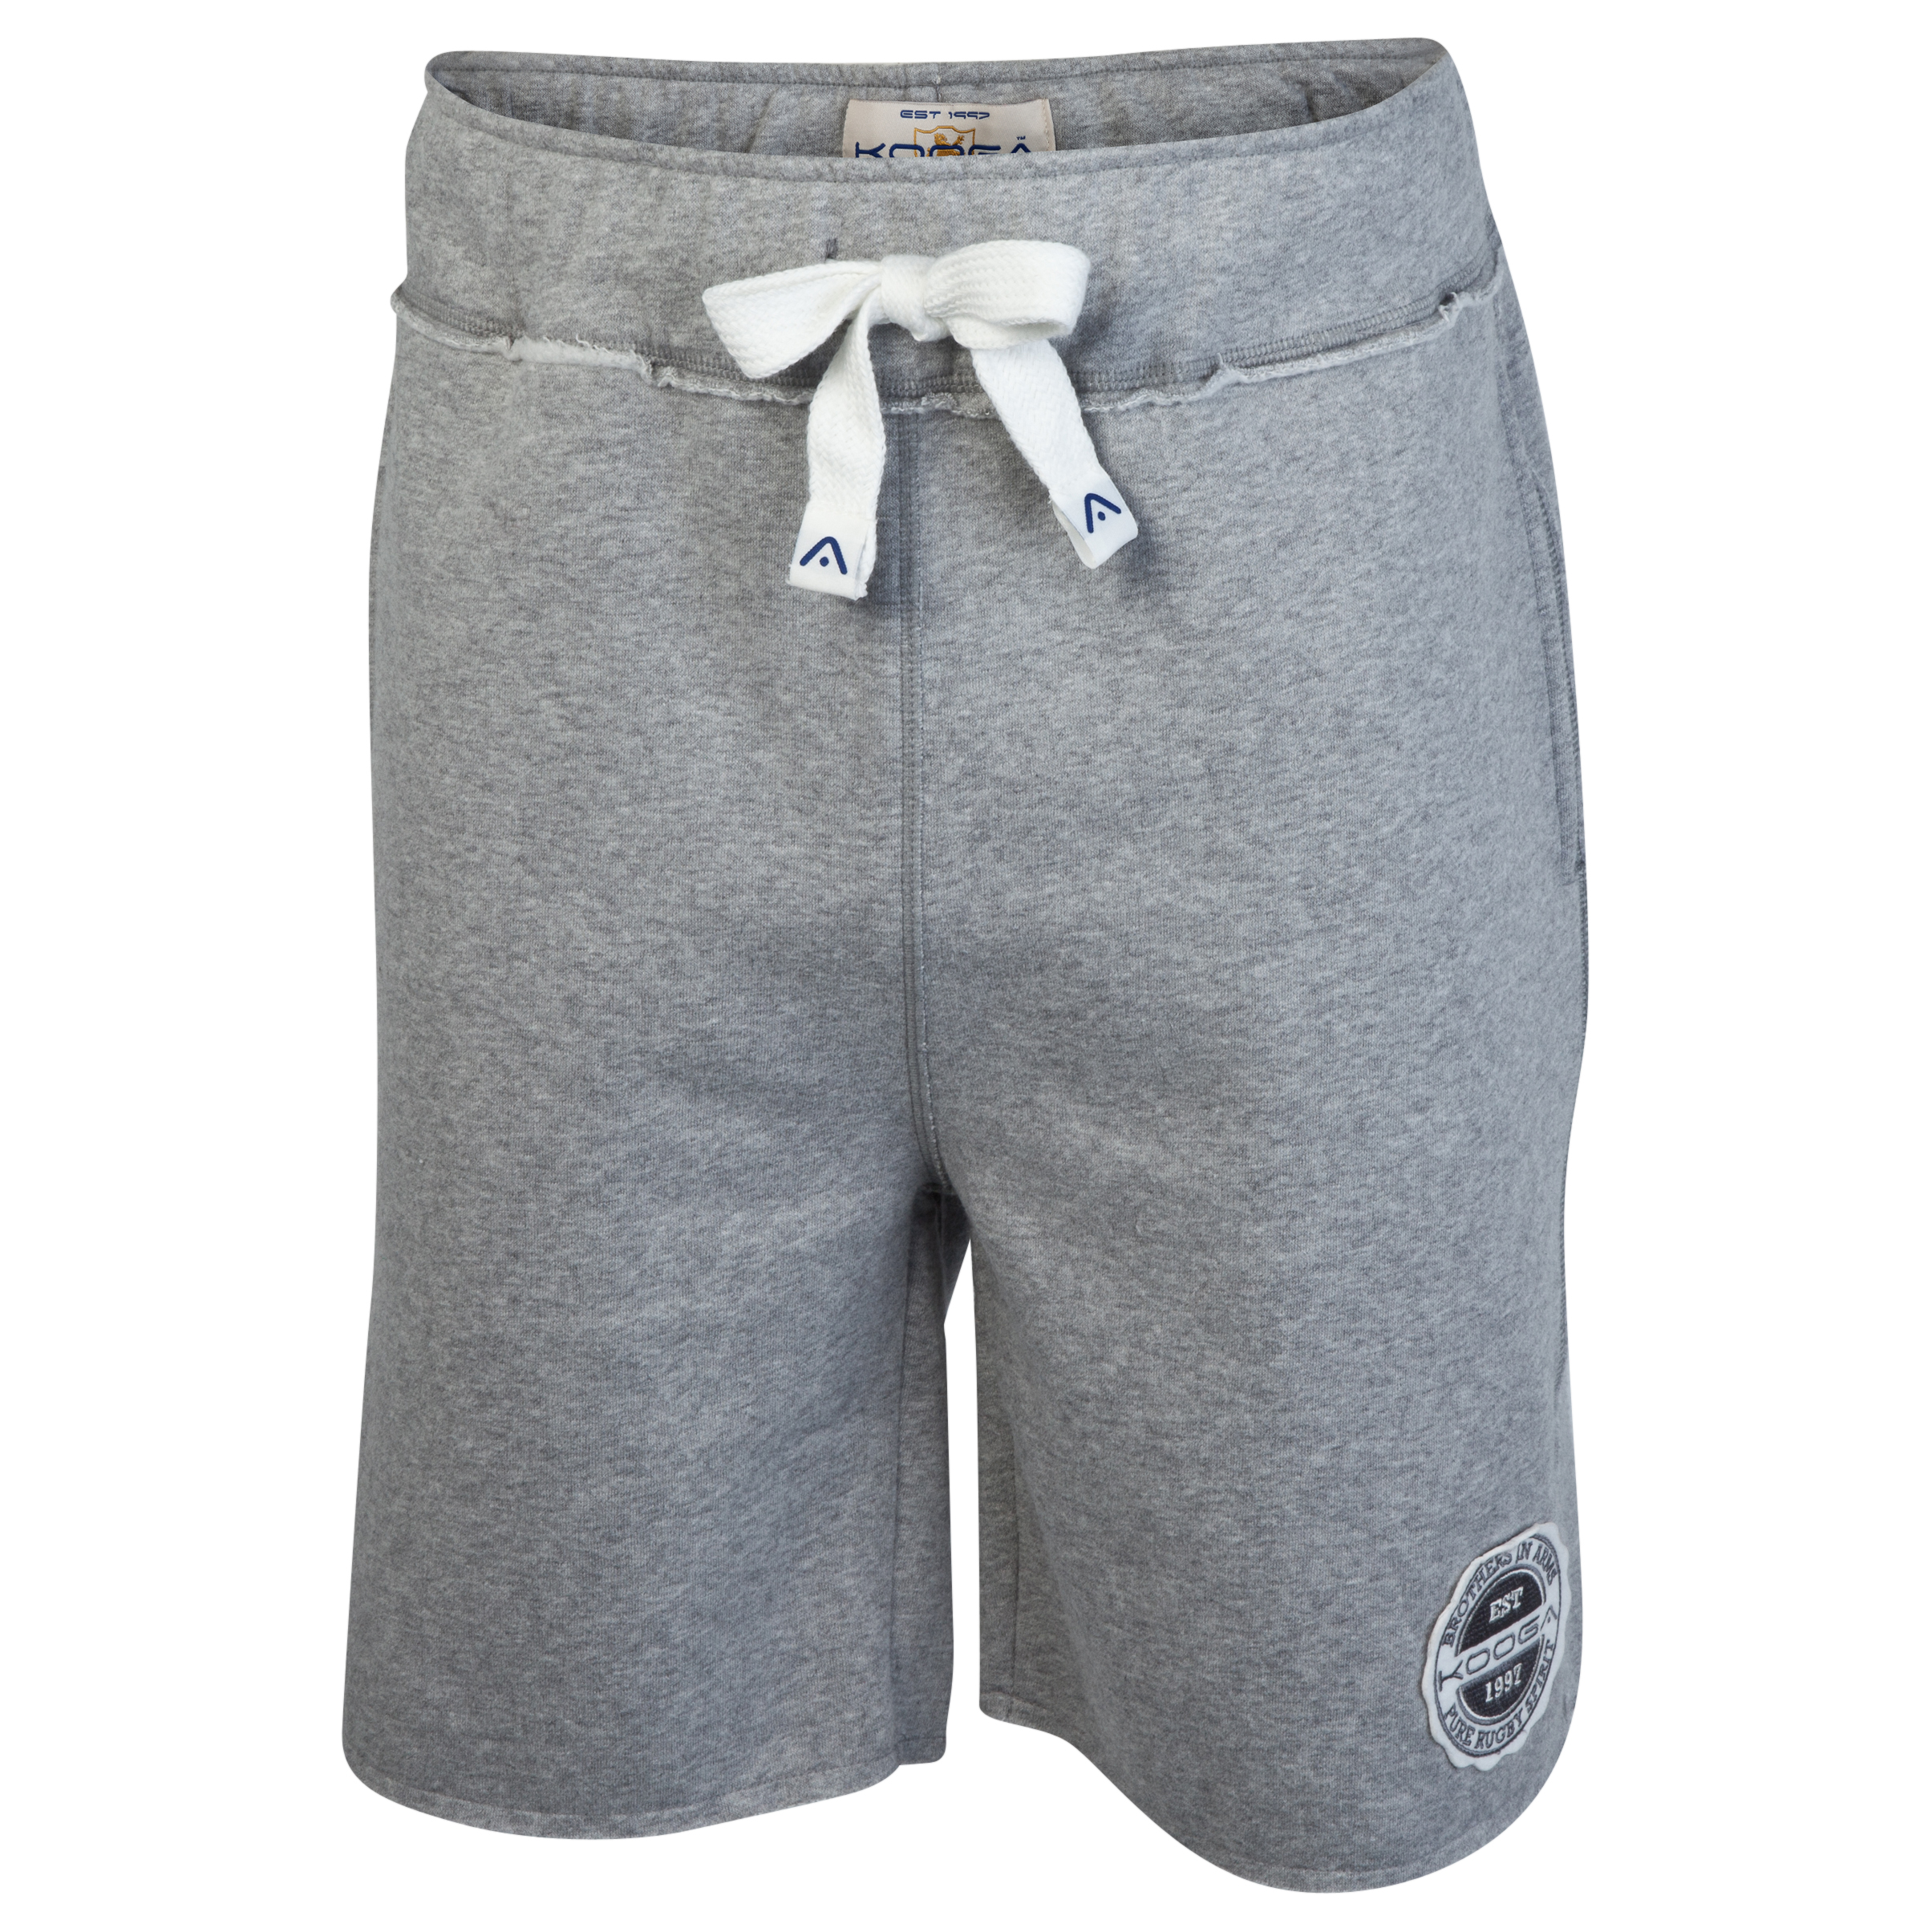 Kooga Fleece Short - Mid Grey Marl